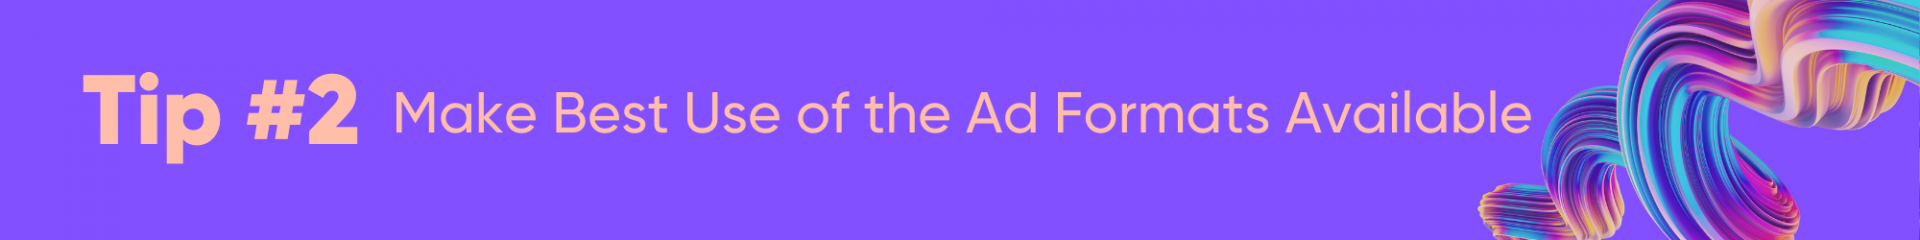 Tip #2 – Make Best Use of the Ad Formats Available